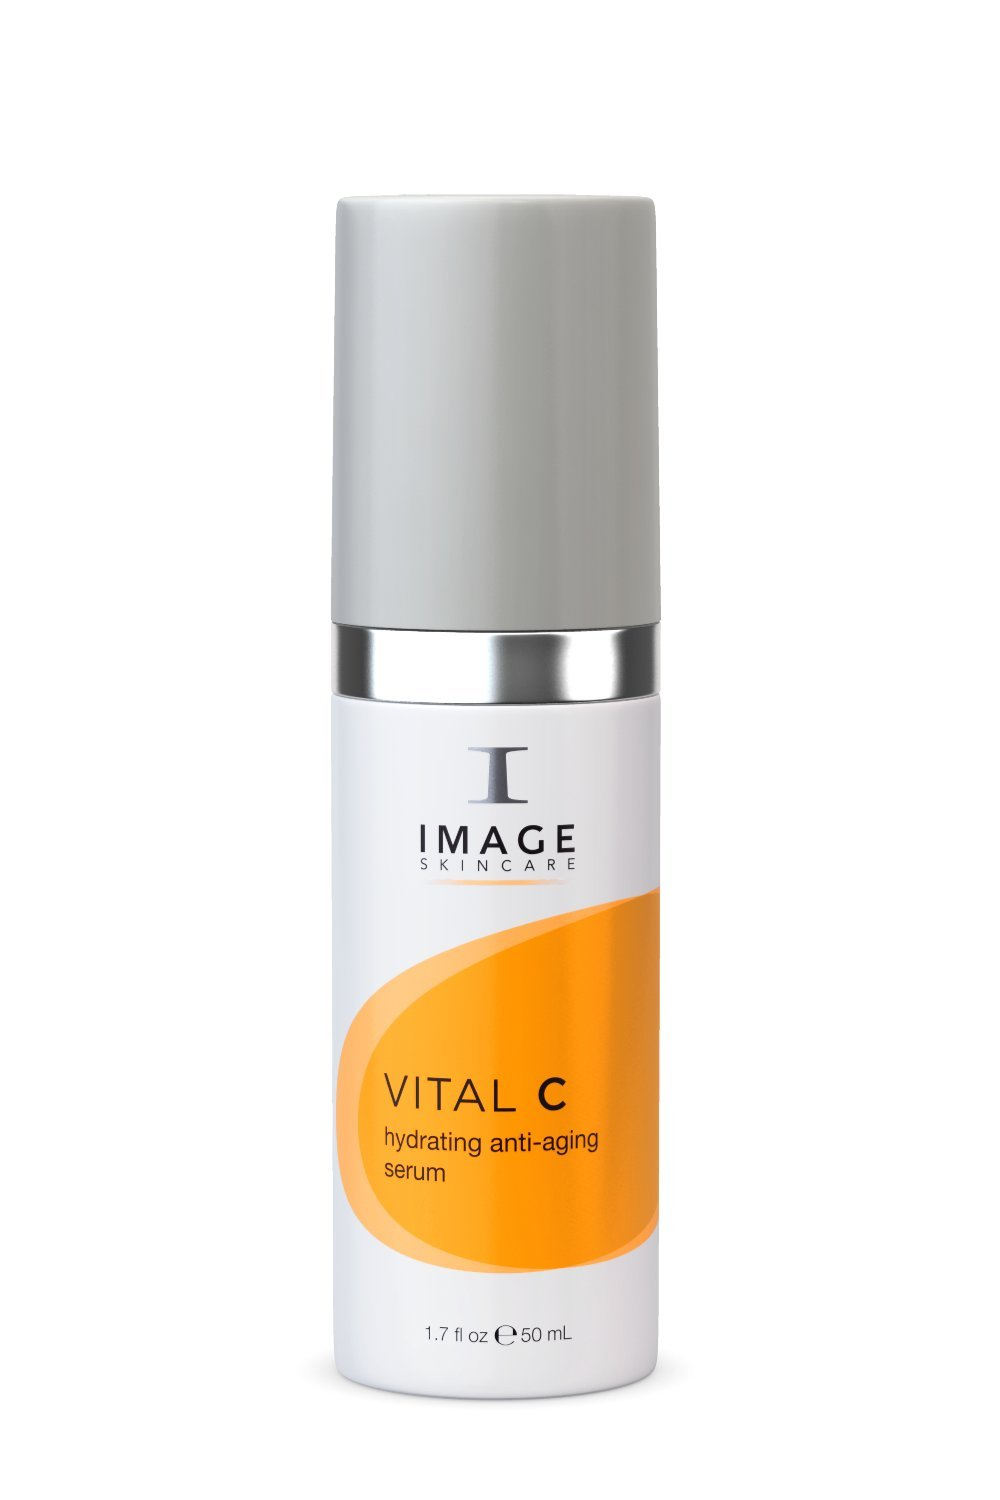 Image Skincare Vital C Hydrating Anti-Aging Serum 1.7 Oz